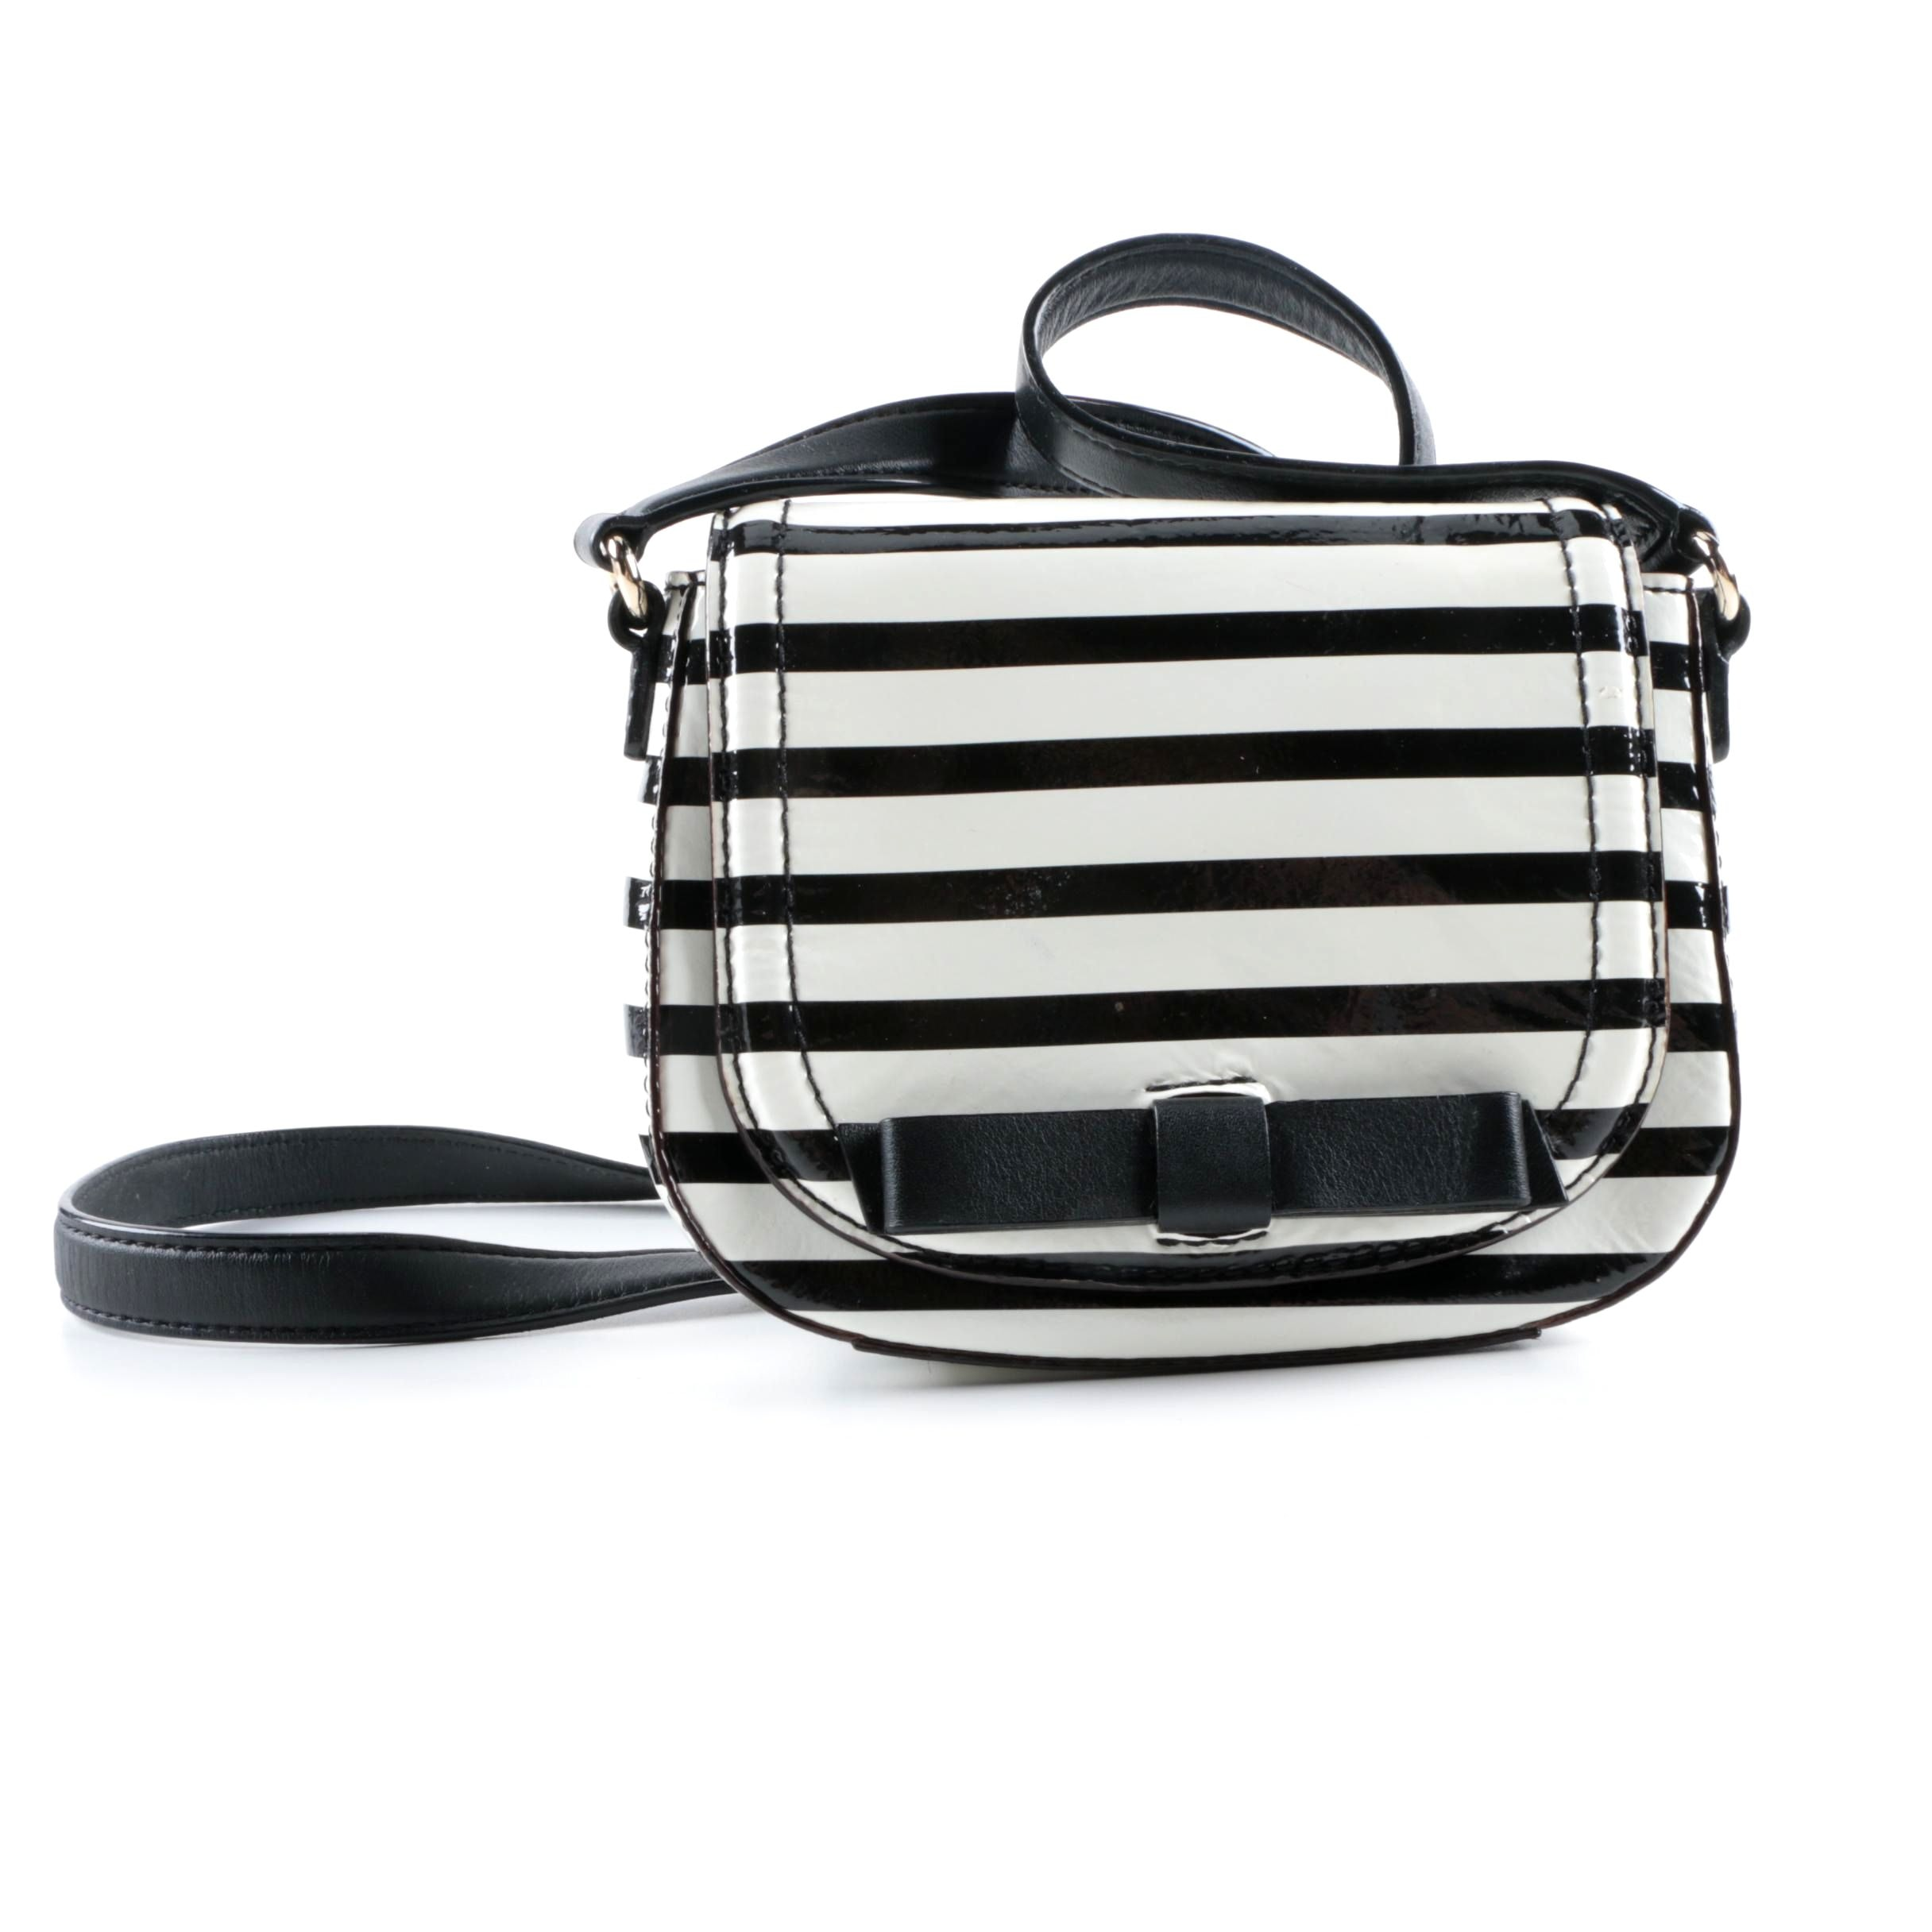 Kate Spade New York Chelsea Park Crossbody Bag